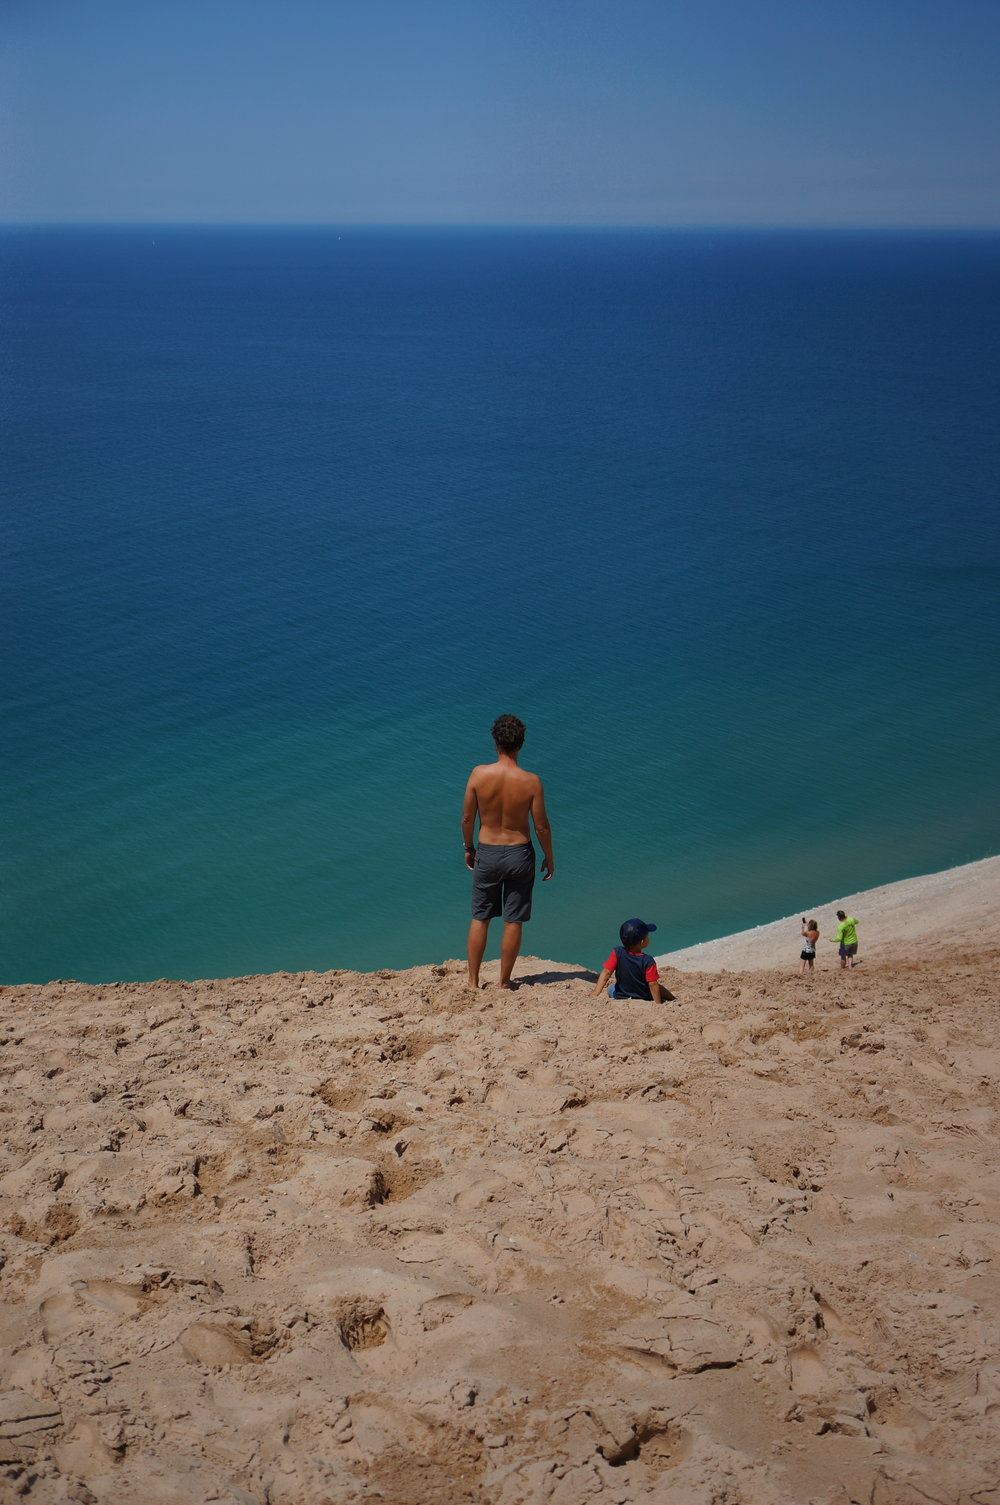 At the top of the Dune Climb - and no, I did not edit these photos. That water is actually that color.